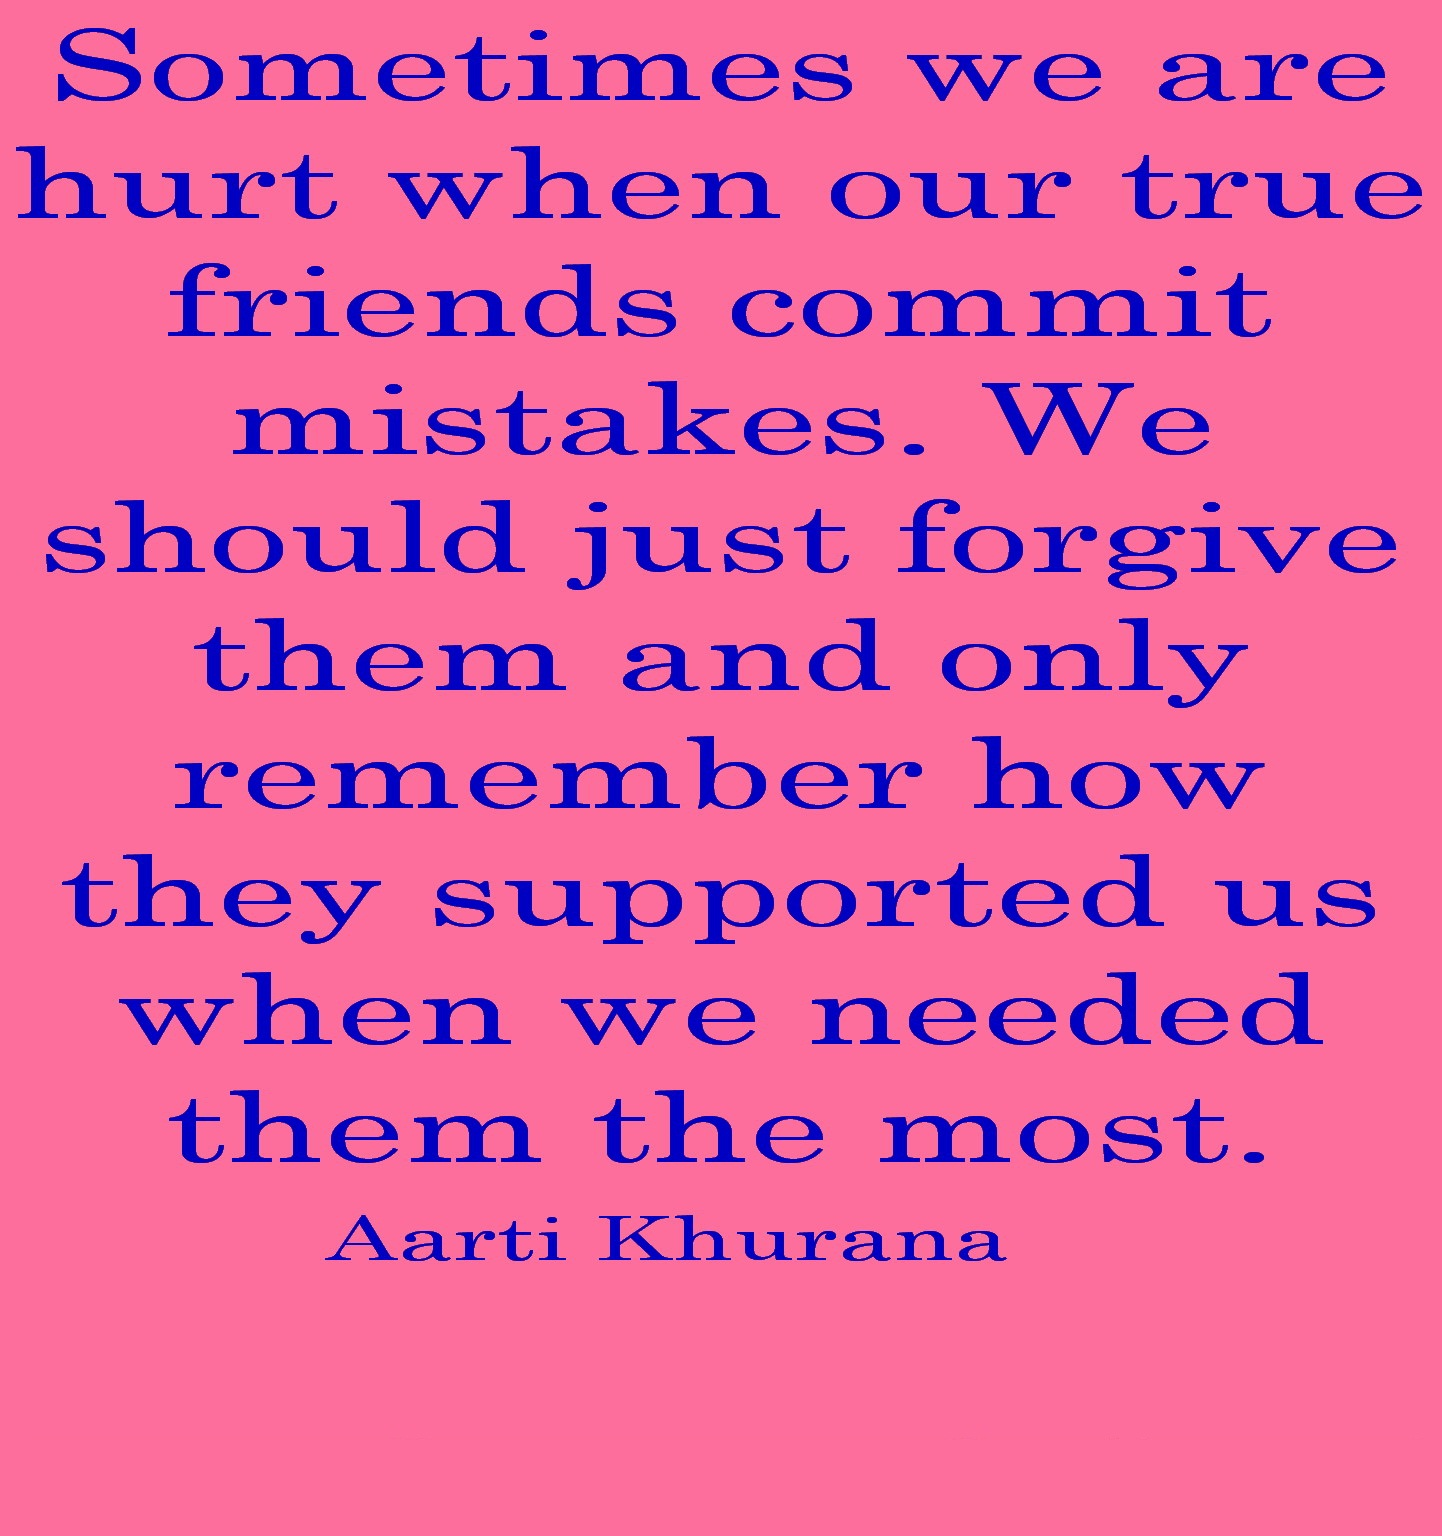 Html Quote: Quotes About Being Fake Friends. QuotesGram